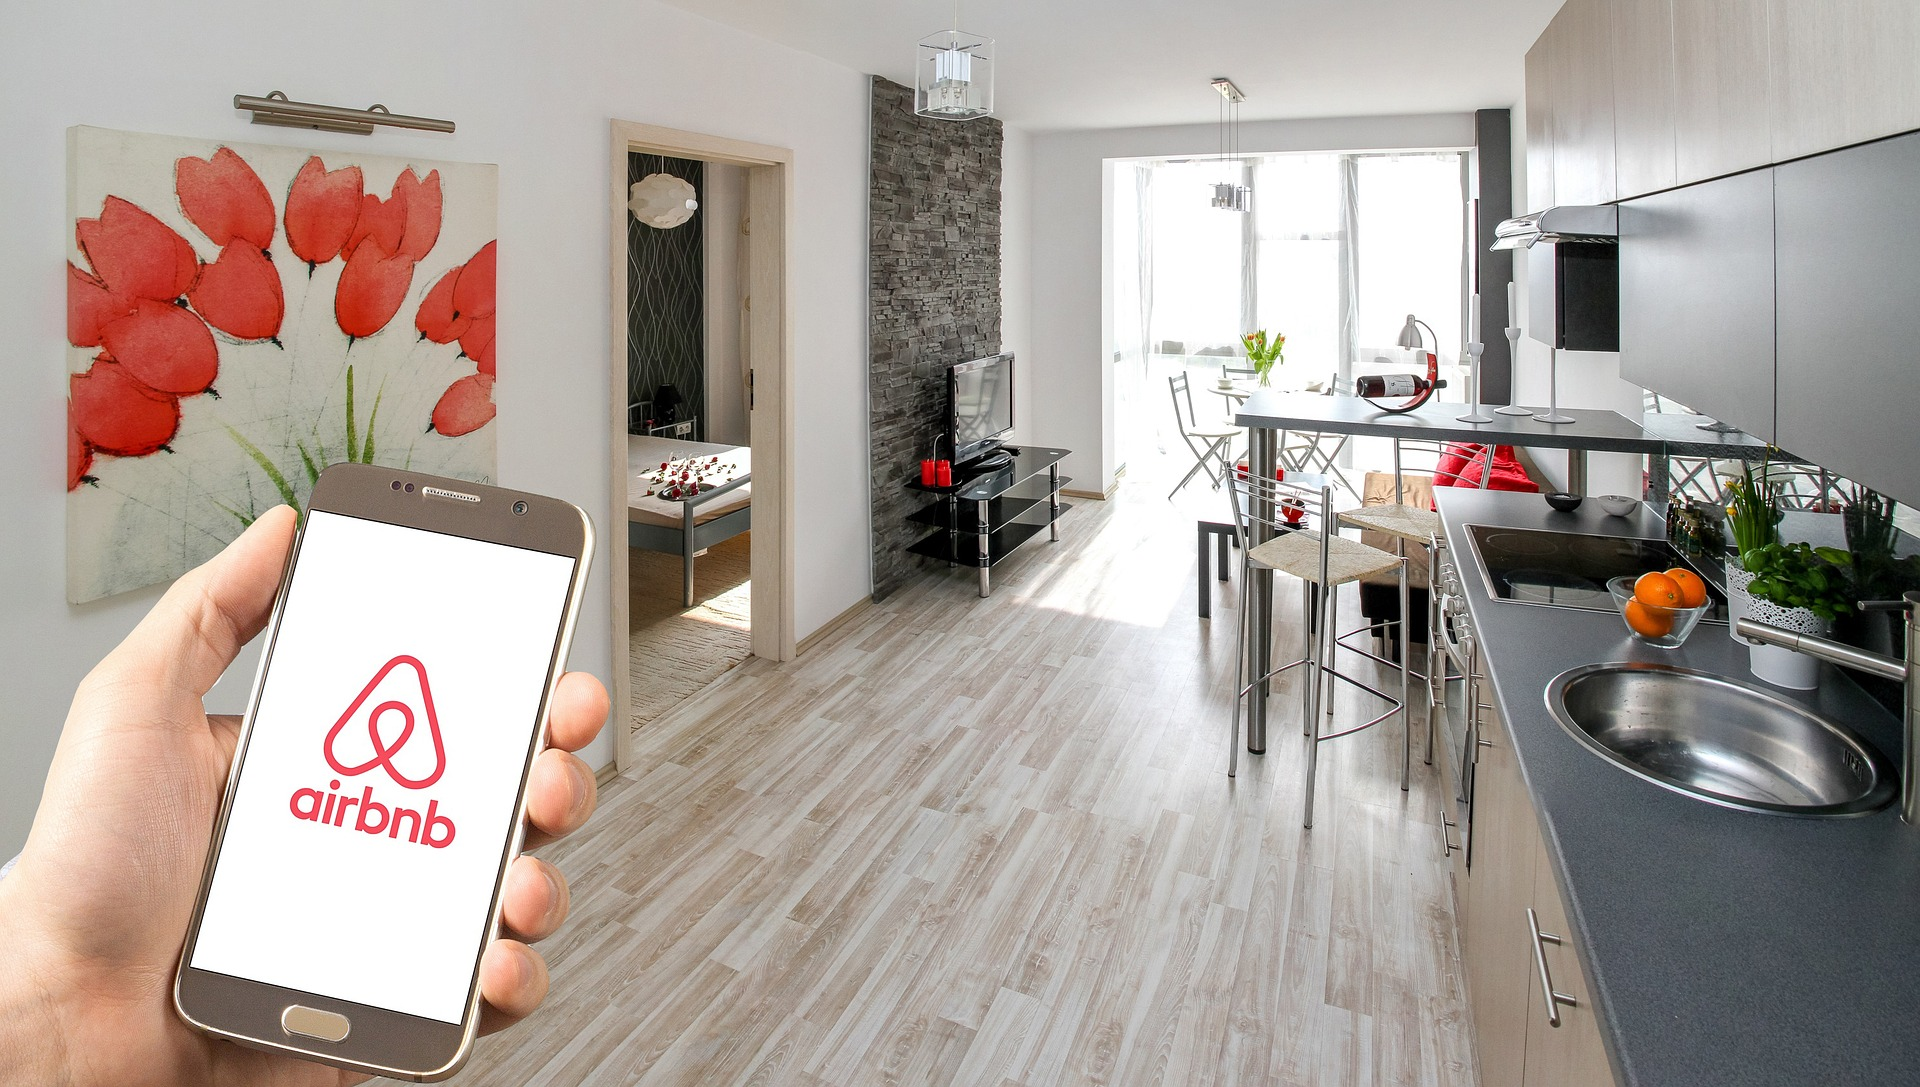 How to List Your Boutique Hotel on Airbnb